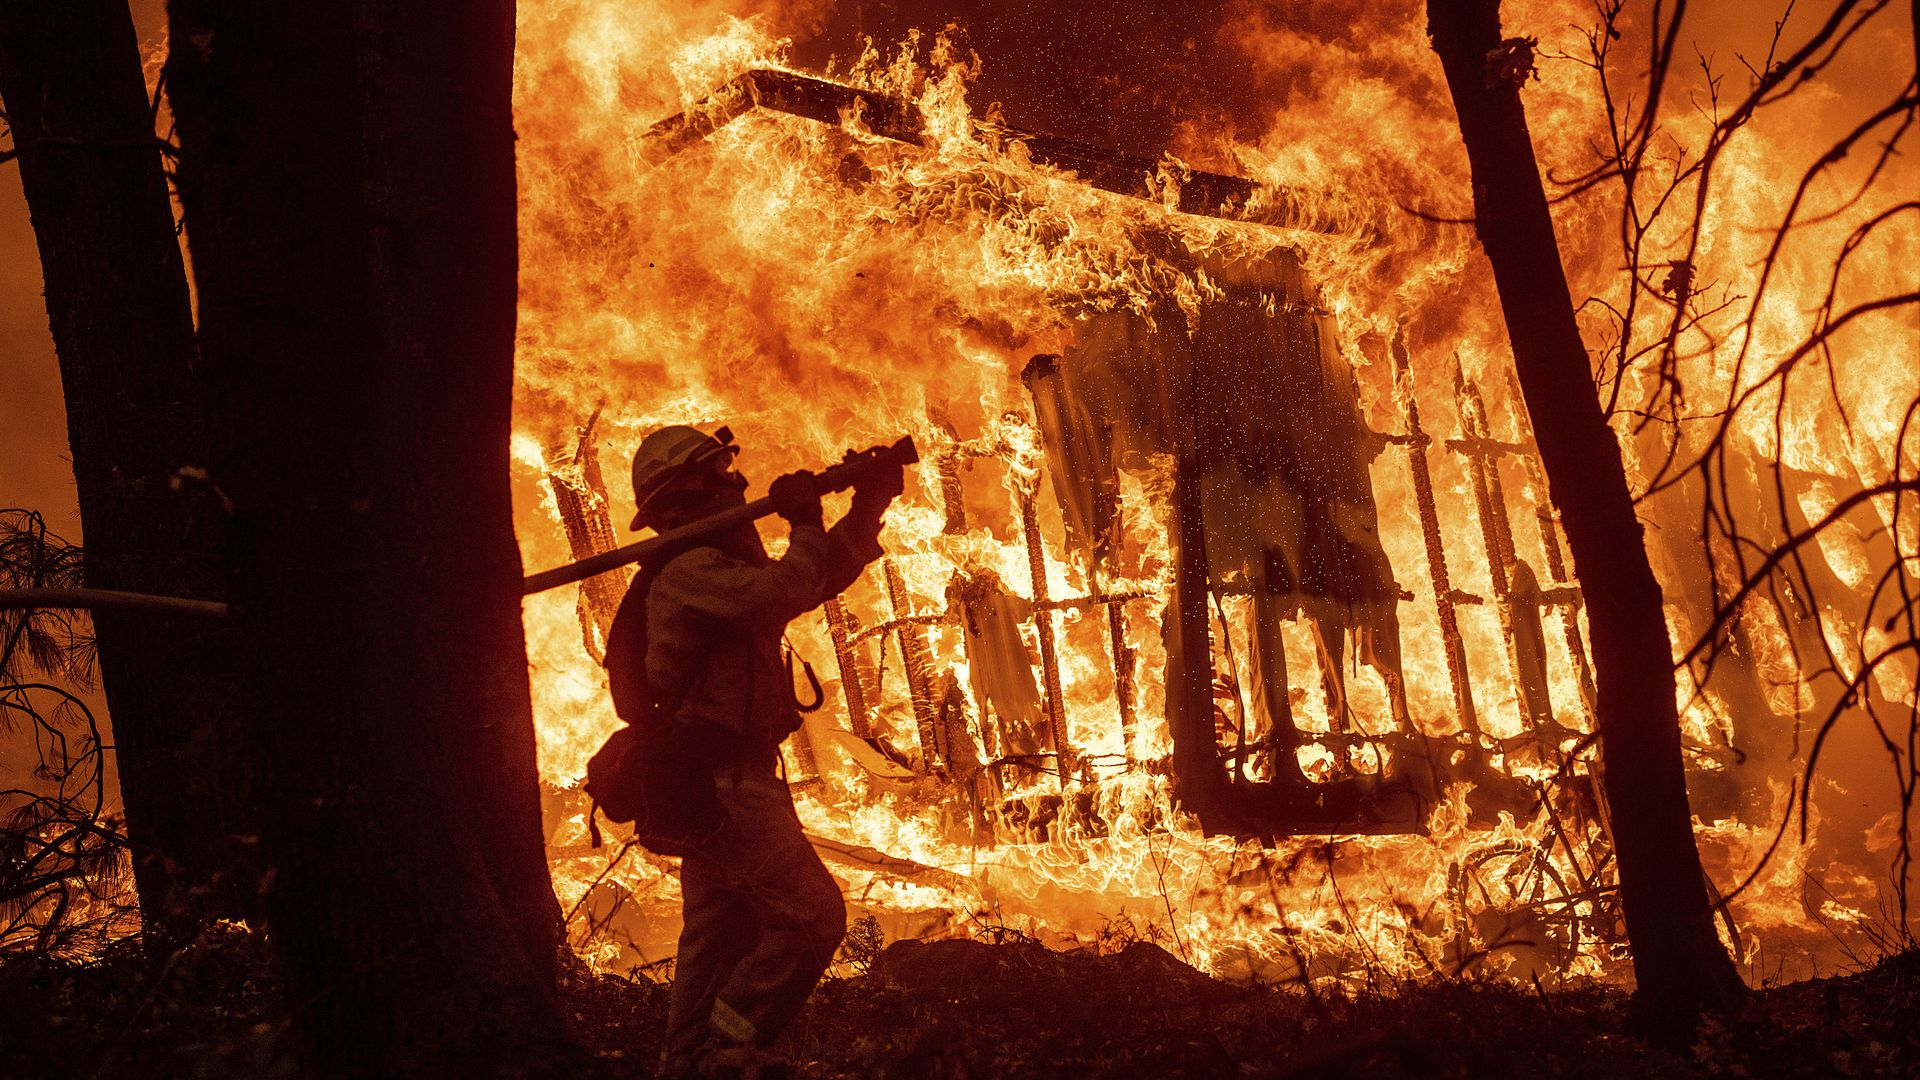 A firefighter attempts to battle a raging California wildfire